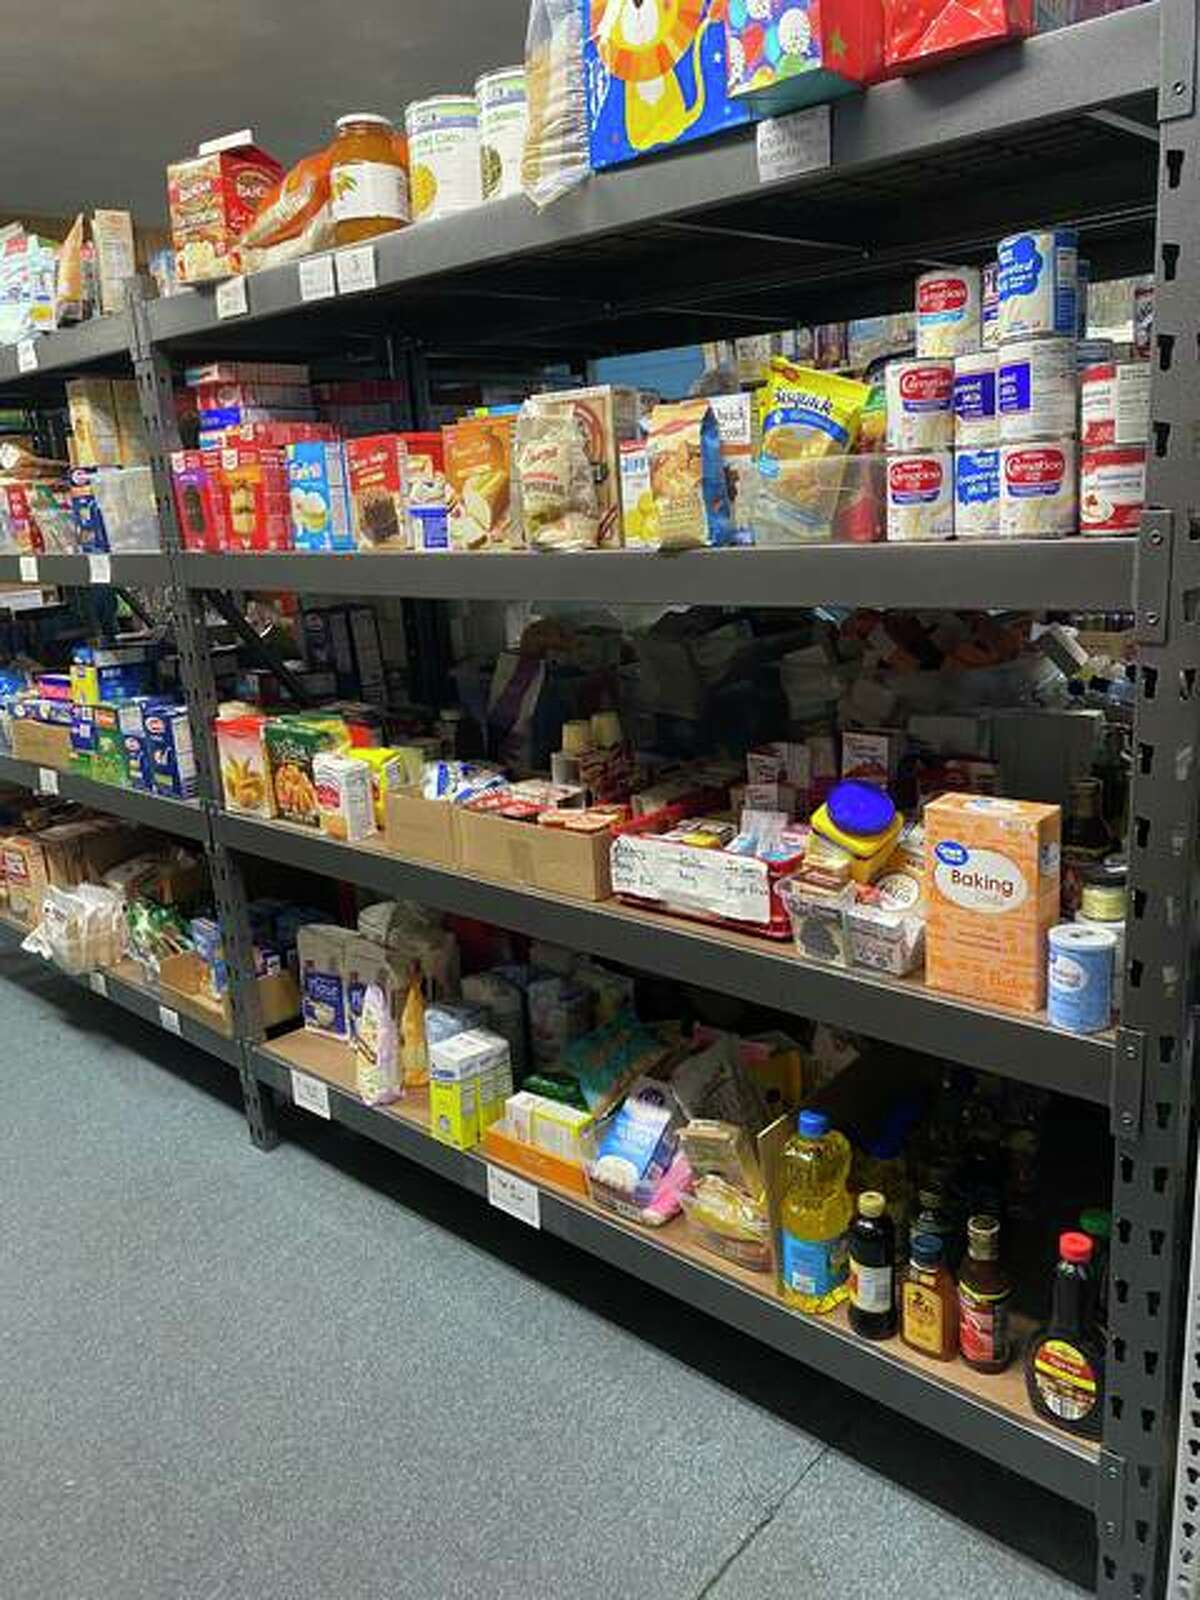 The shelves at Glen-Ed Pantry are currently full of food and other items, but Jane Ahasay, director of development for the the pantry, wants to make sure the shelves will remain full beyond the holidays.